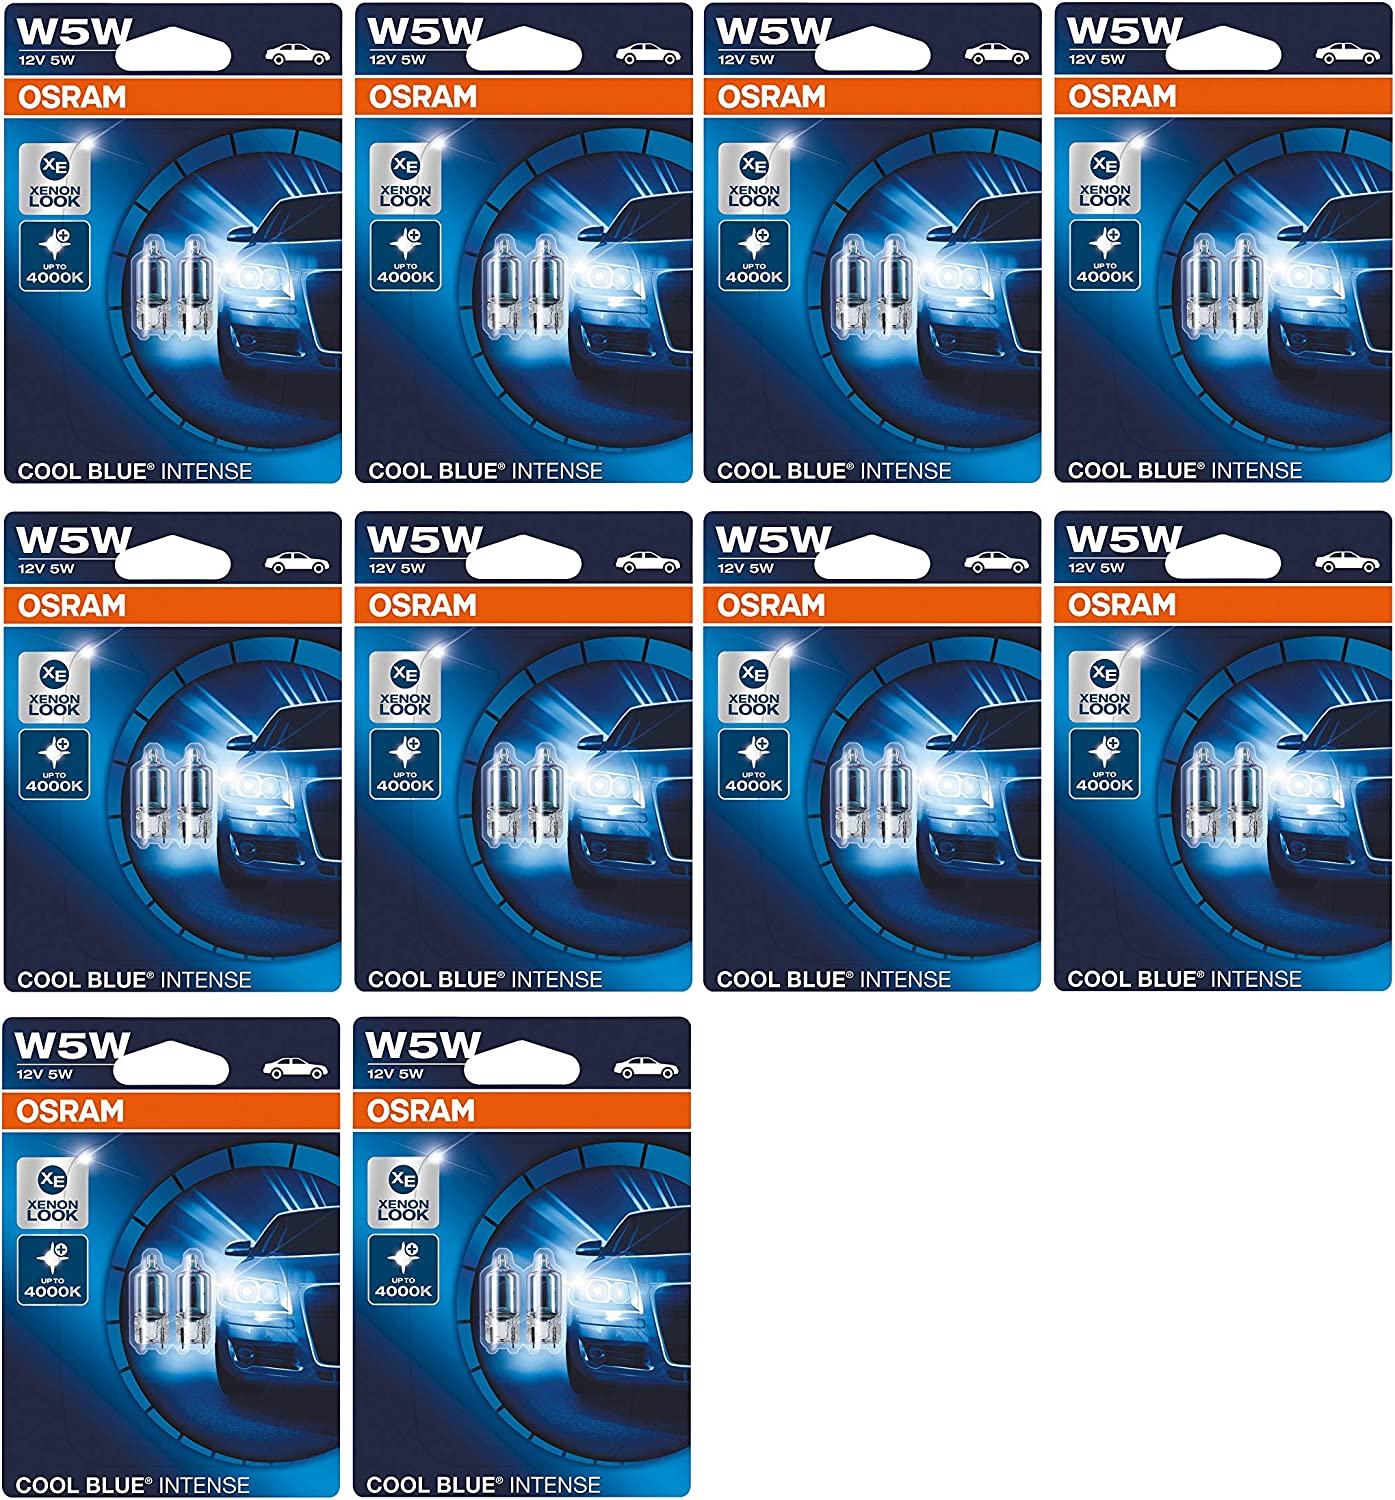 2x Ford Fusion Ju Genuine OSRAM Cool Blue Intense Number Plate Lamp Light Bulbs